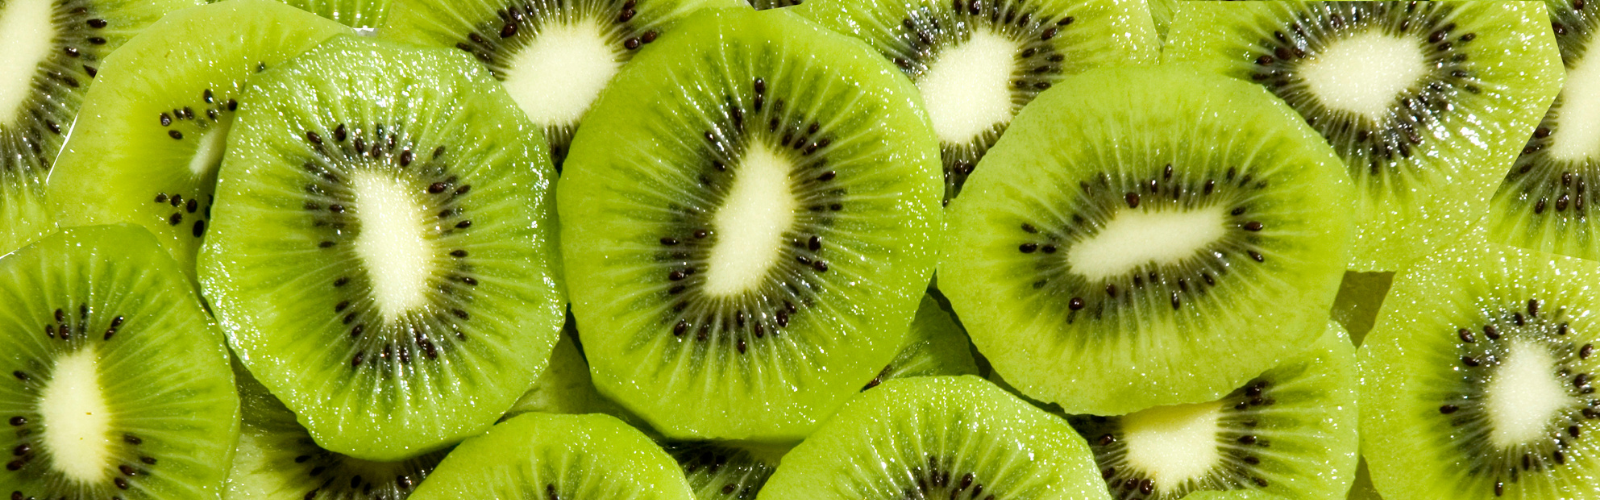 Kiwis - Fruits to Increase Sperm Count and Motility